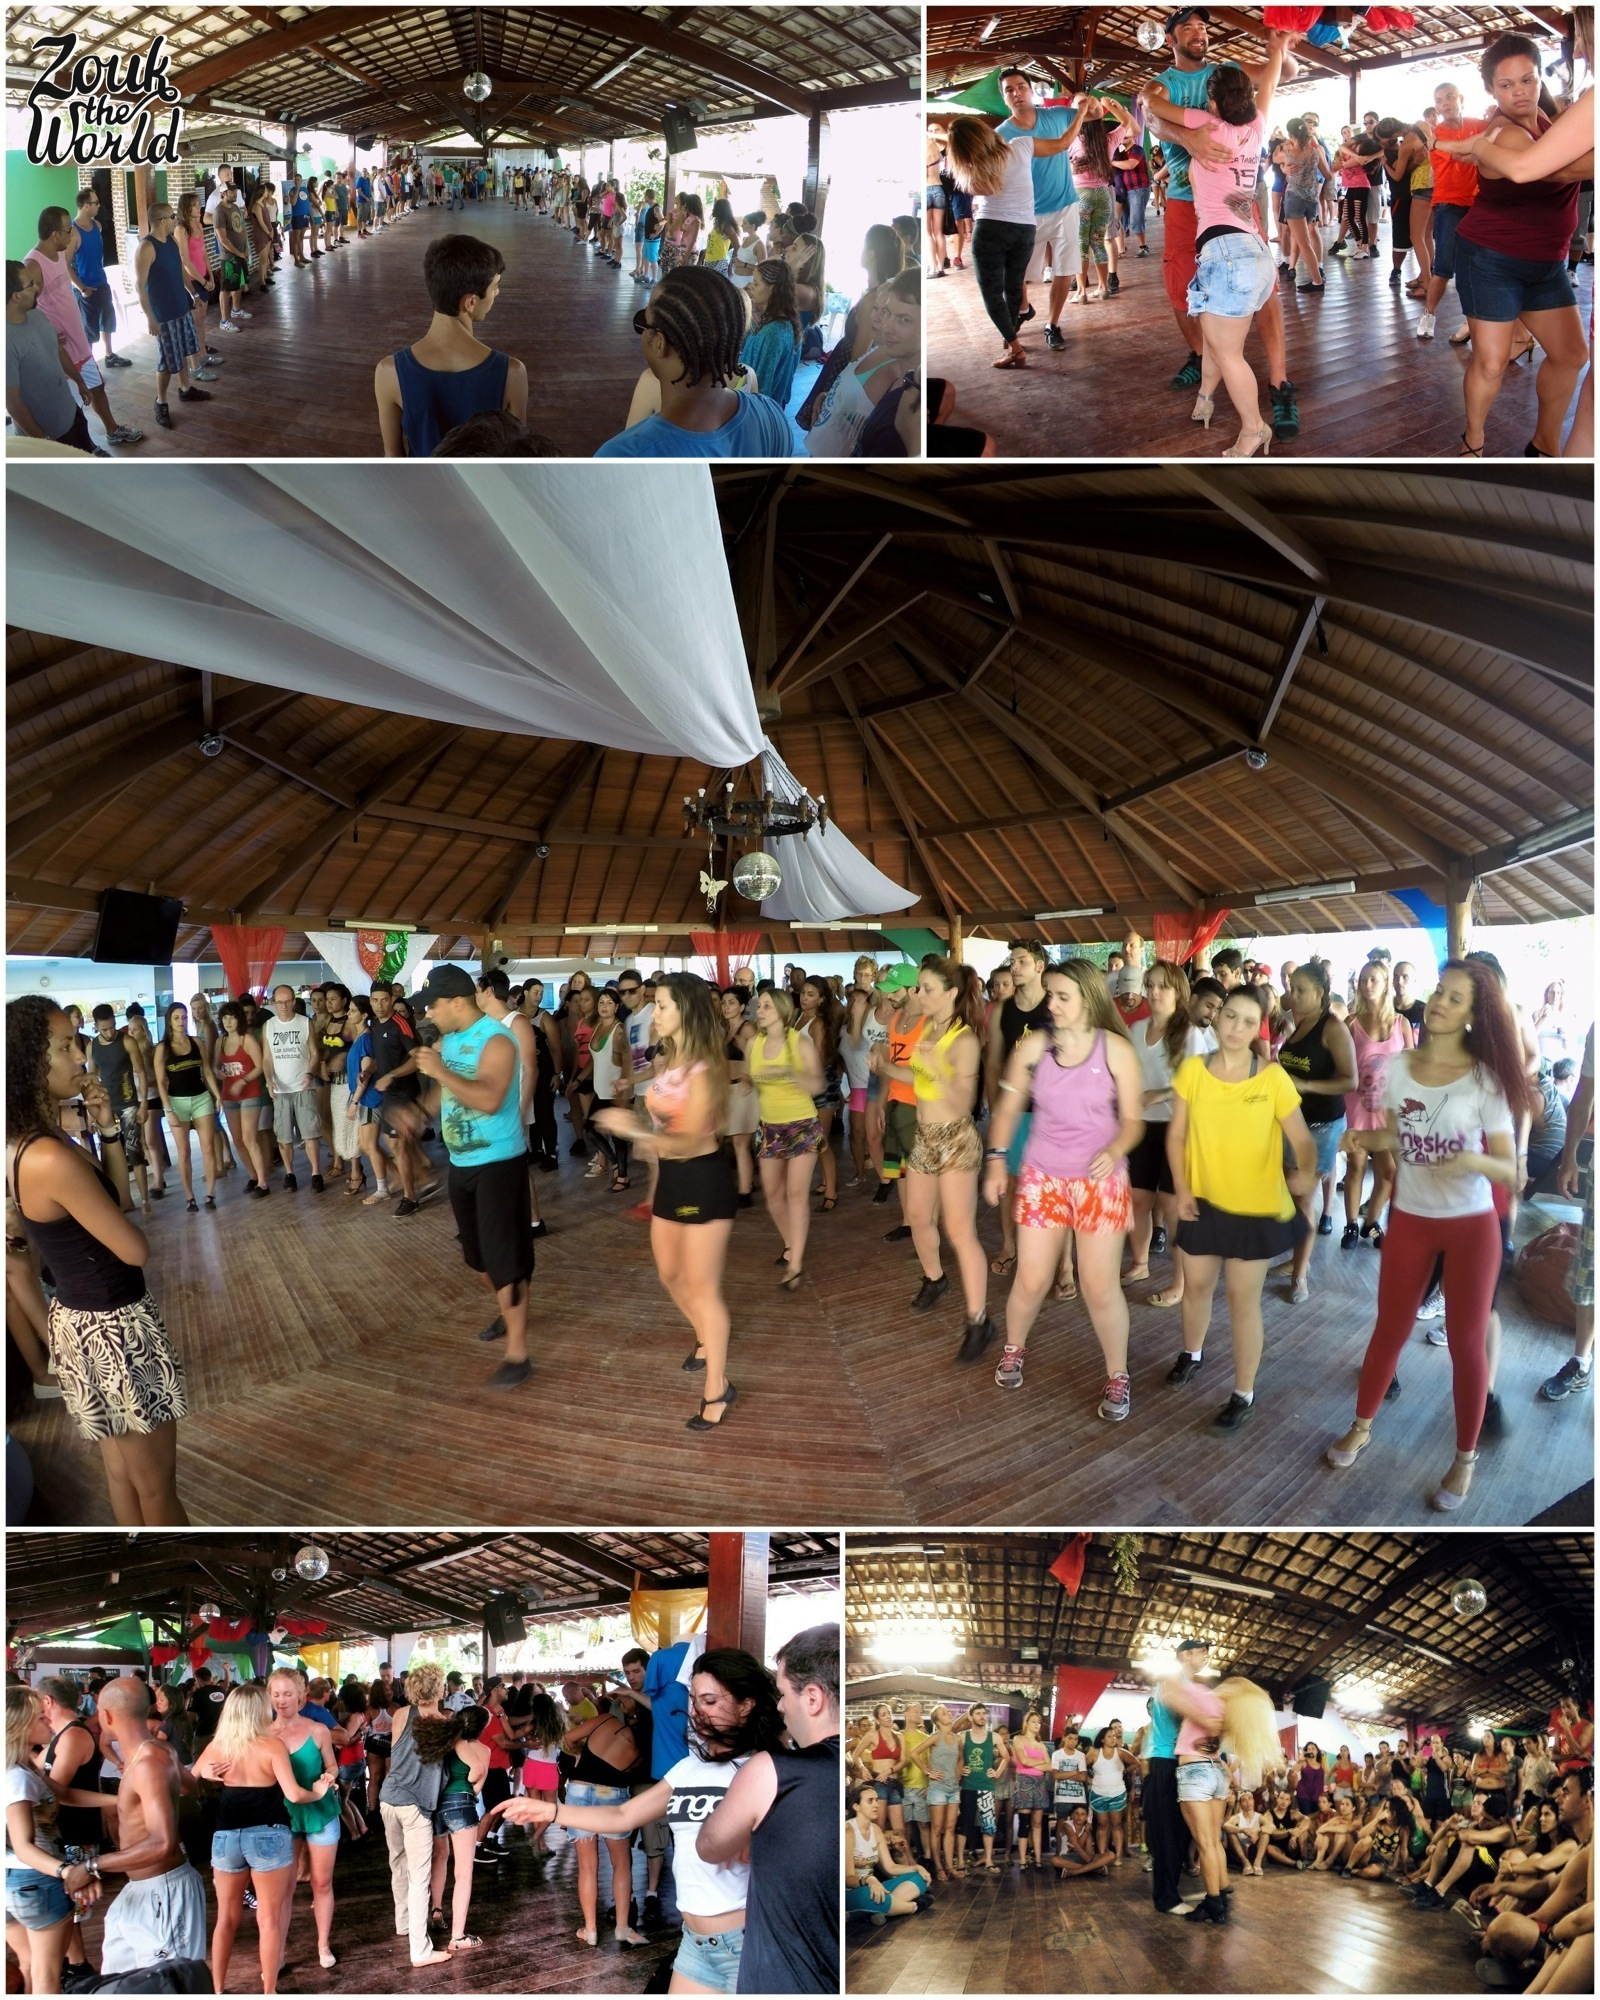 Workshops in the airy spaces - bring light clothes and enjoy the brazilian summer